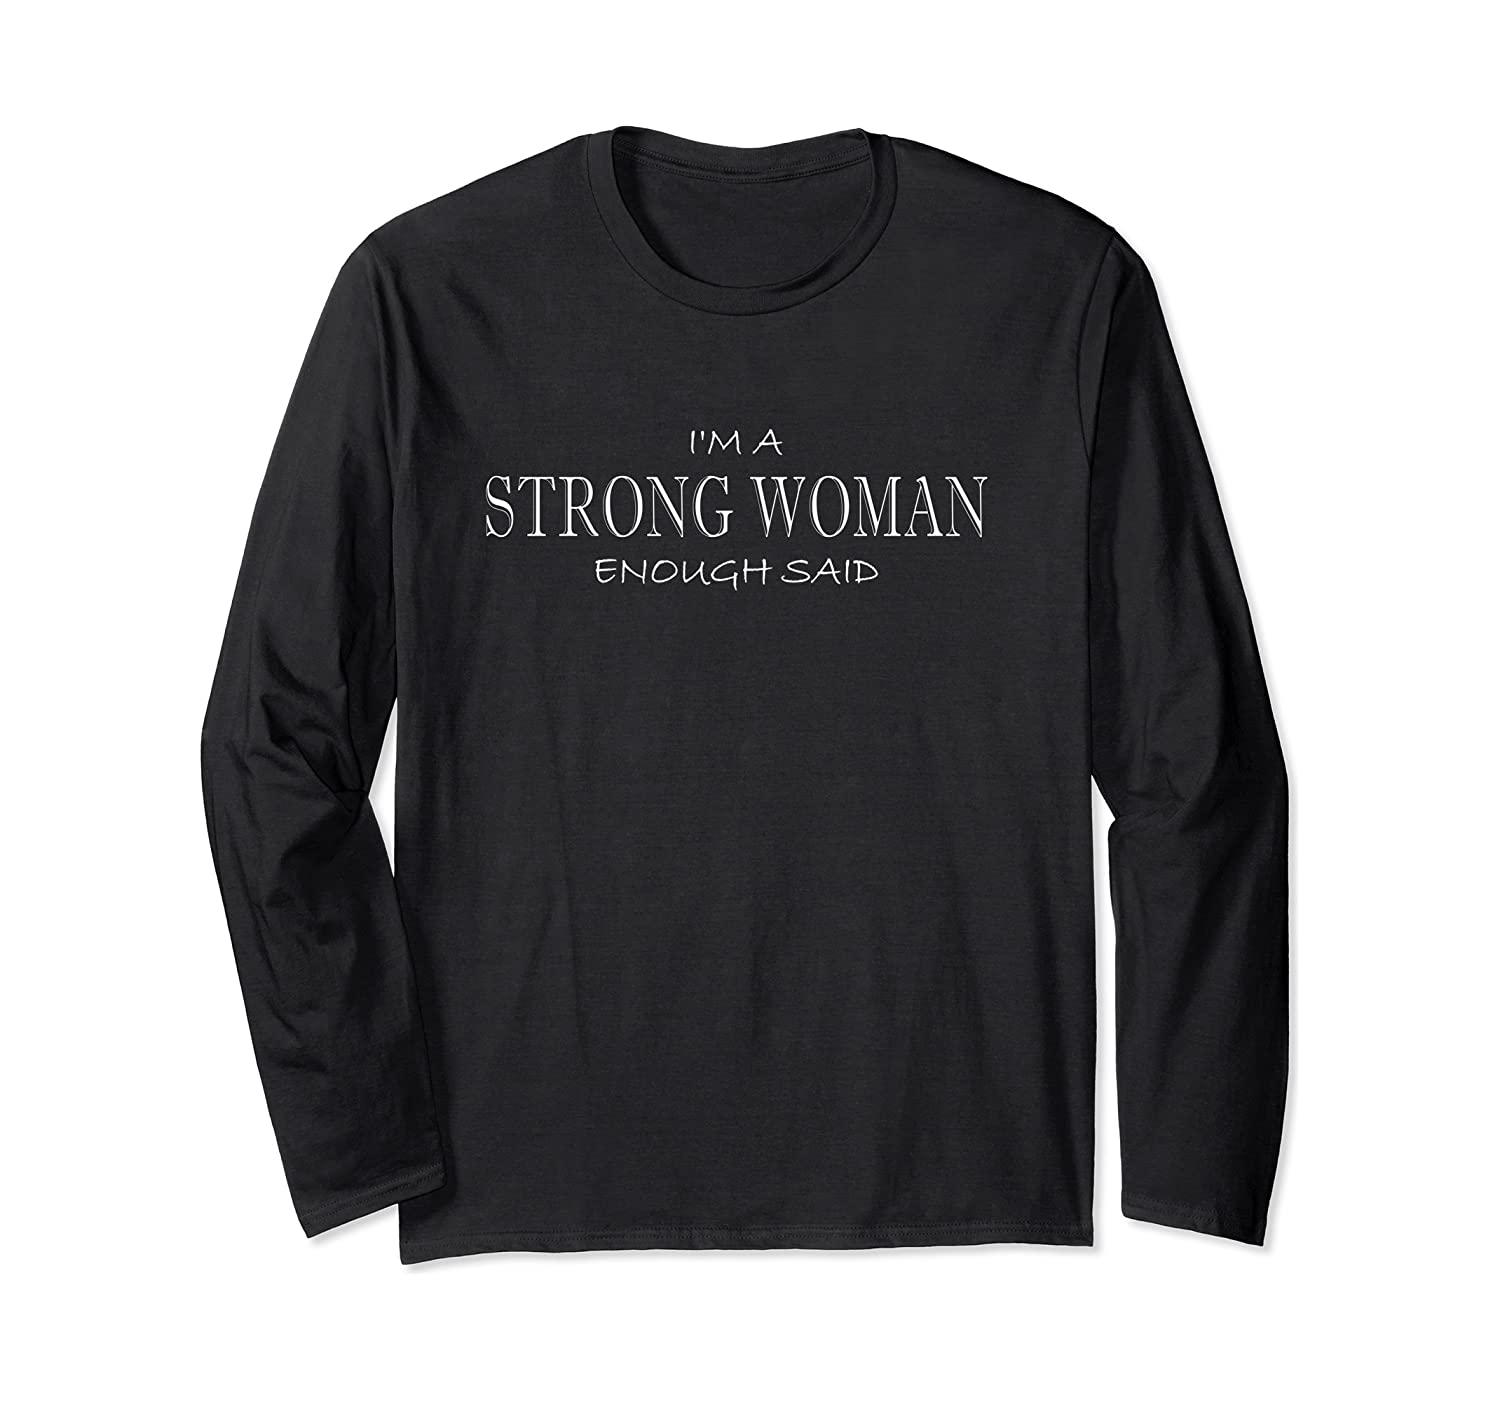 STRONG WOMAN Enough Said anti sexism oppression Long Sleeve